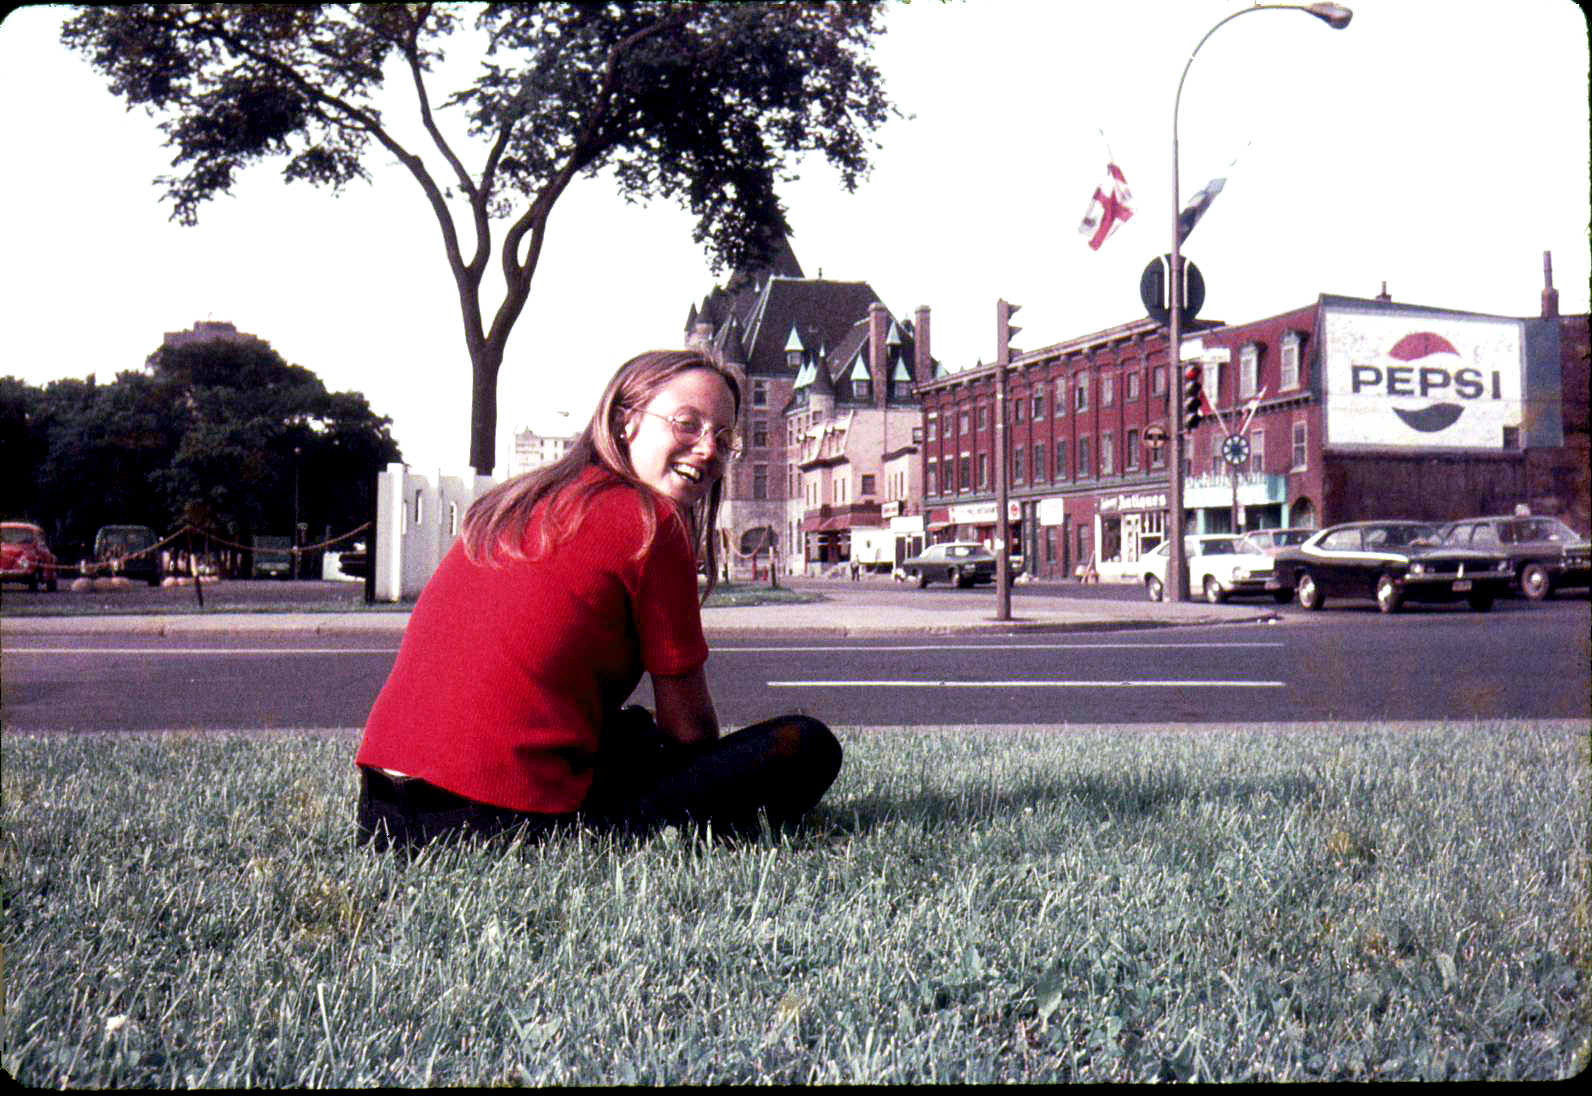 Dottie in Montreal (I think - Ottawa?)